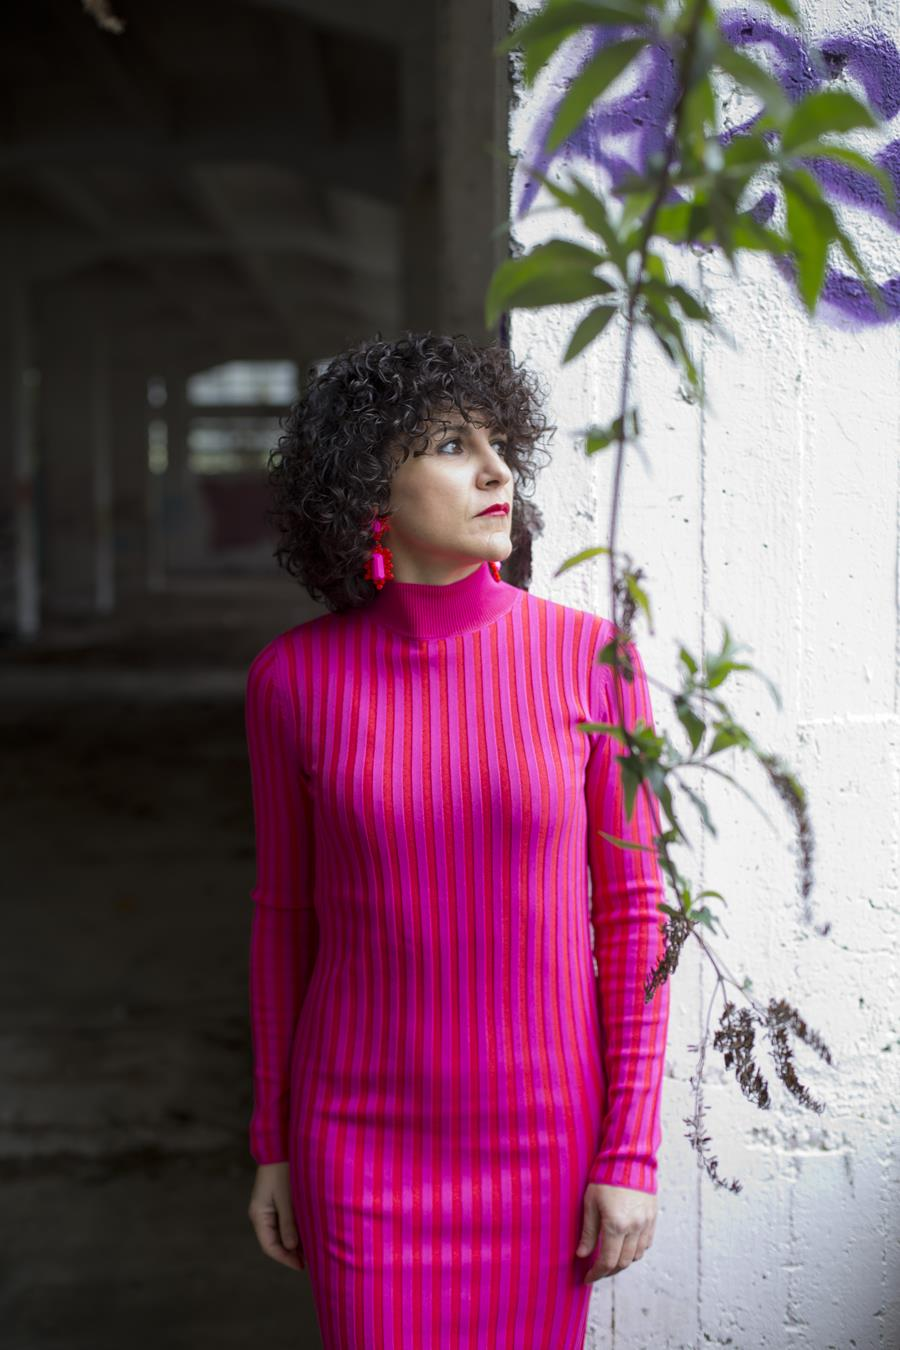 Rebeca Valdivia, asesora de imagen, personal shopper, estilista, stilist, influencer, Donostia, San Sebastián, Miss Clov, la blogger indie, influencer, dress, vestido canalé, rosa, pink, rizos, curls, tomboystyle, graffitis